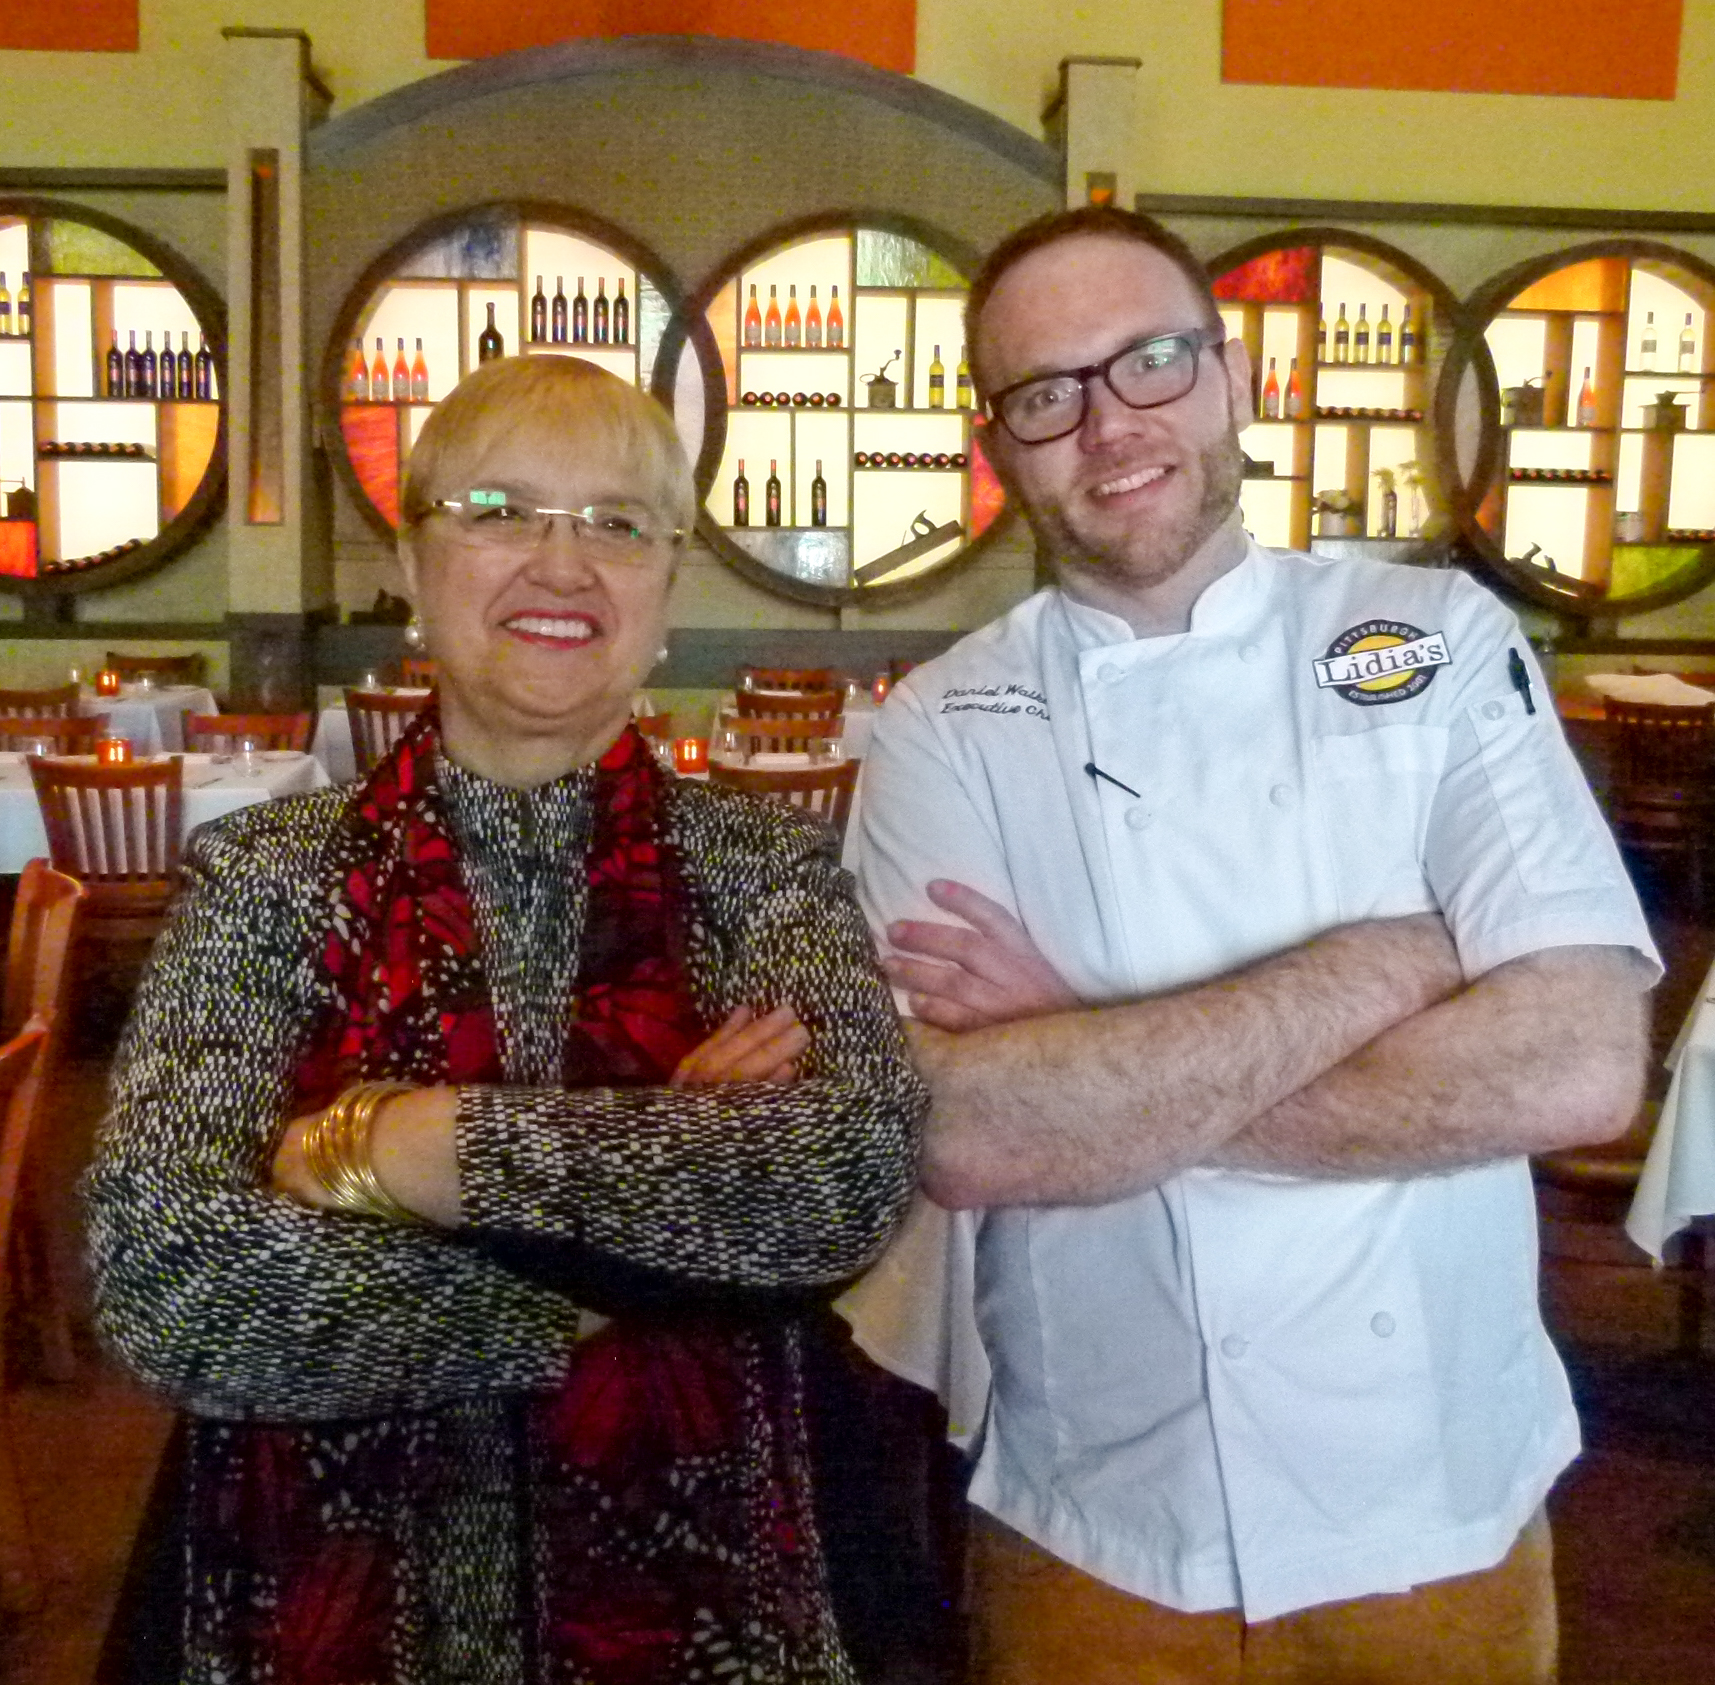 The namesake of Lidia's Pittsburgh, Lidia Bastianich, and executive chef, Daniel Walker.